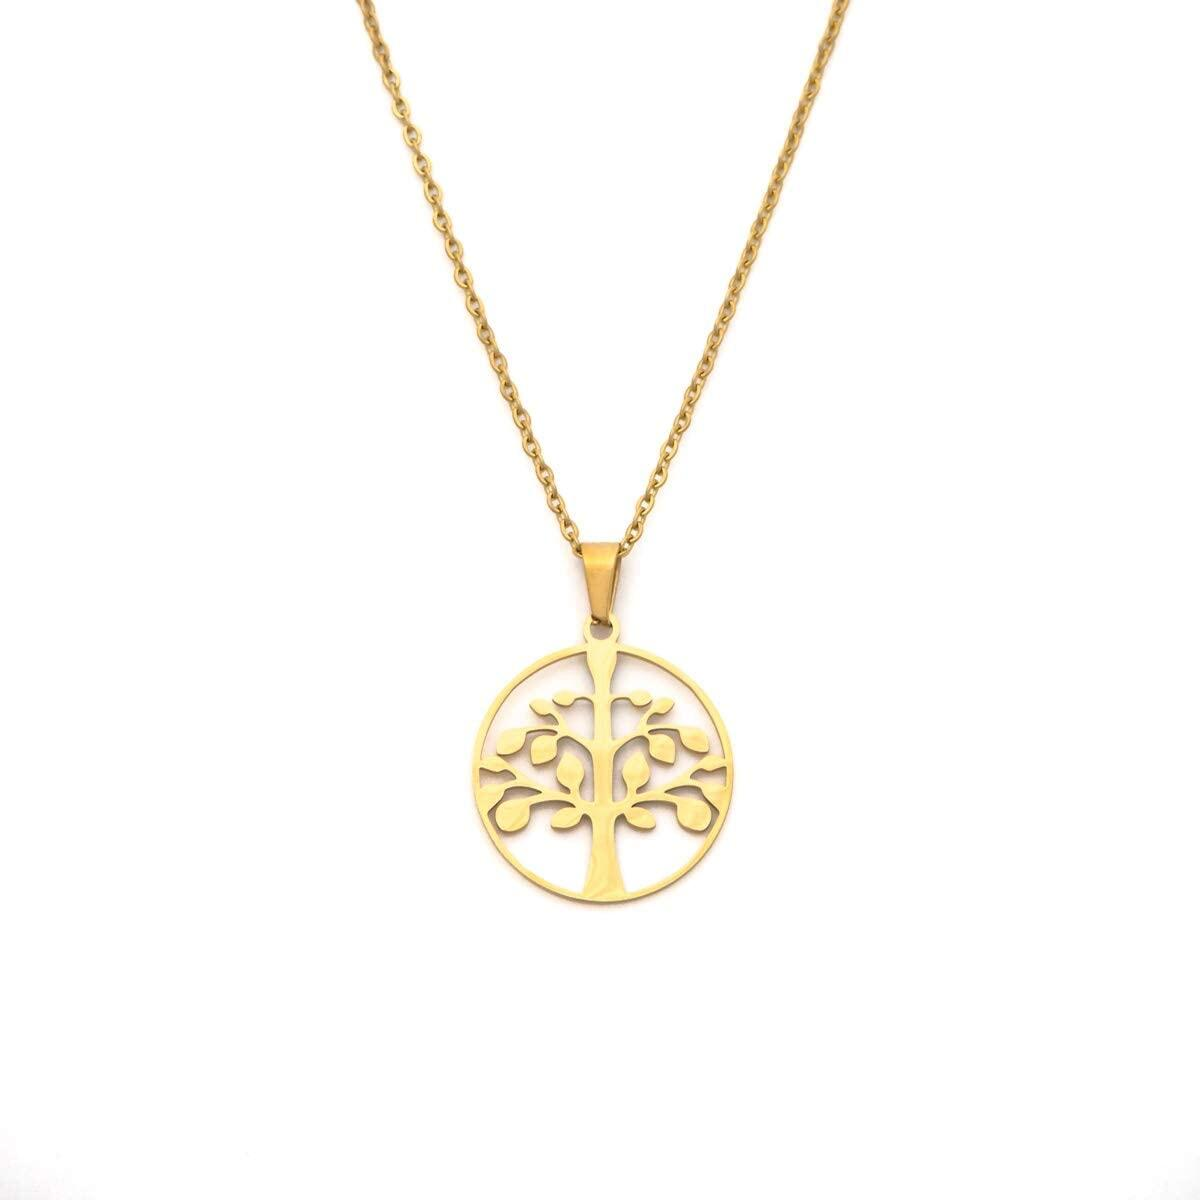 Tree of Life Necklace - Tree Pendant Necklace for Women Charm Necklace Lucky Necklaces Gold Necklace for Women